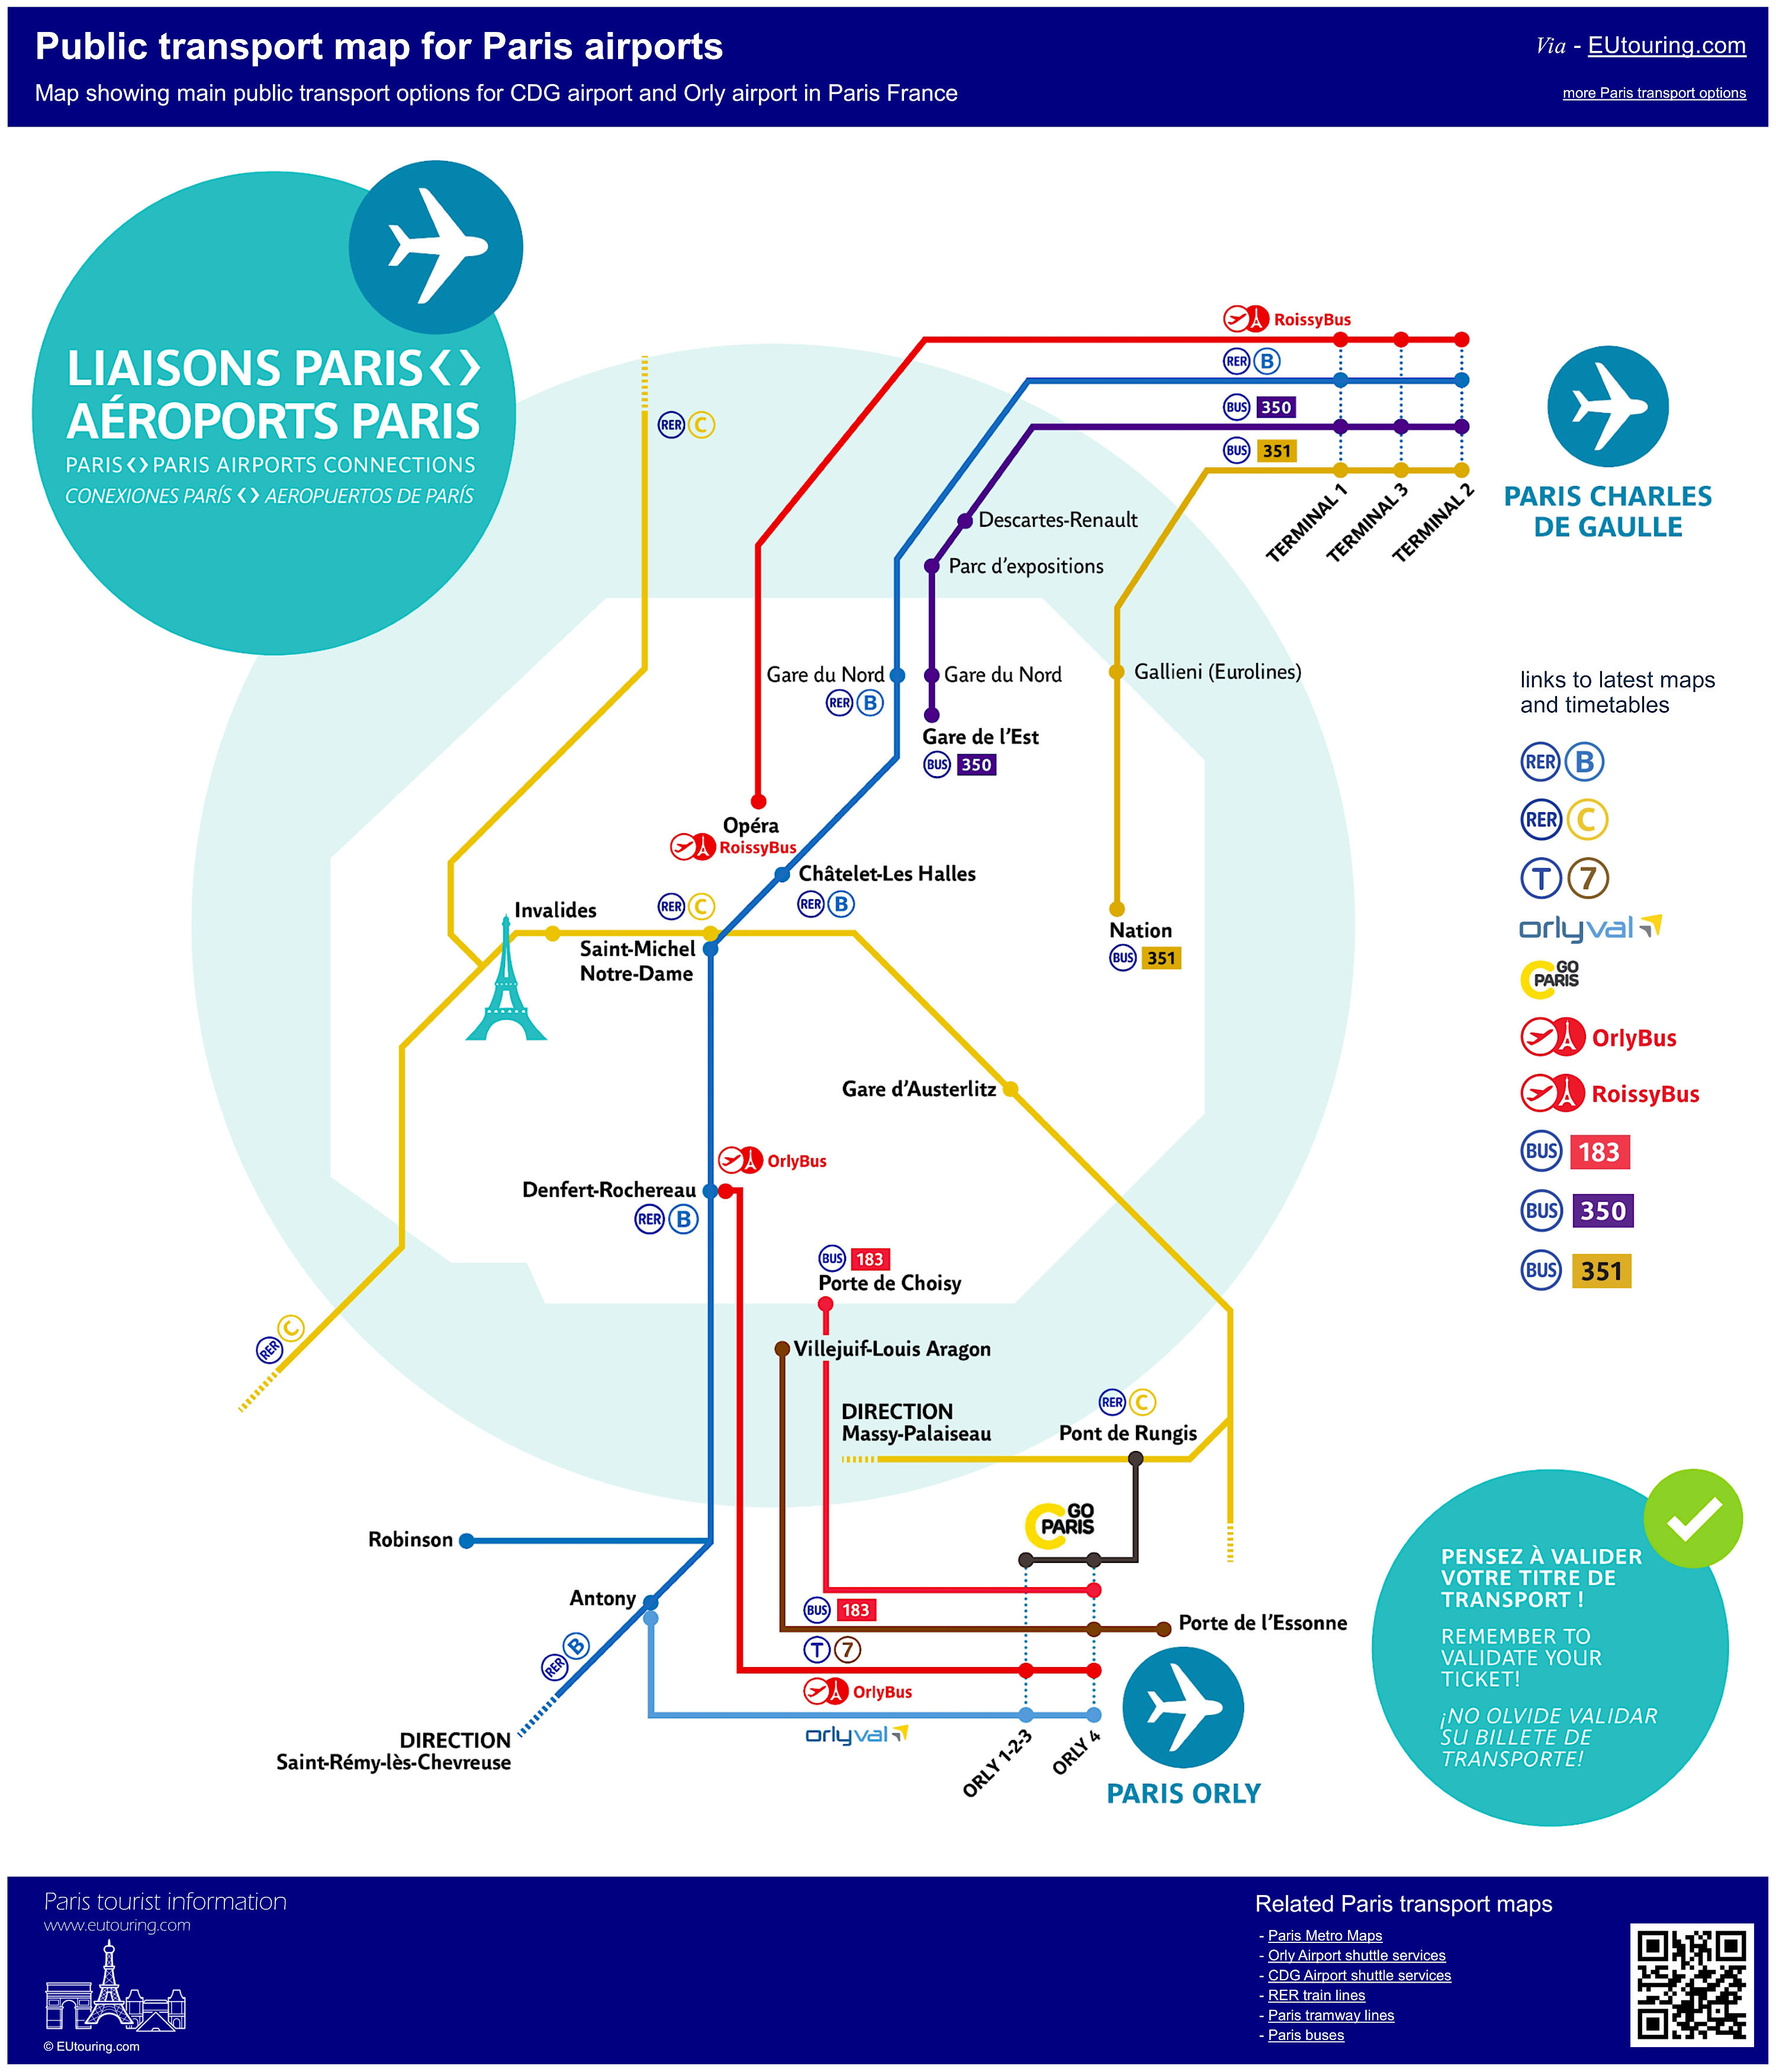 Map Of France Showing Airports.Public Transport Maps Of Trains Trams And Buses For Paris Airports